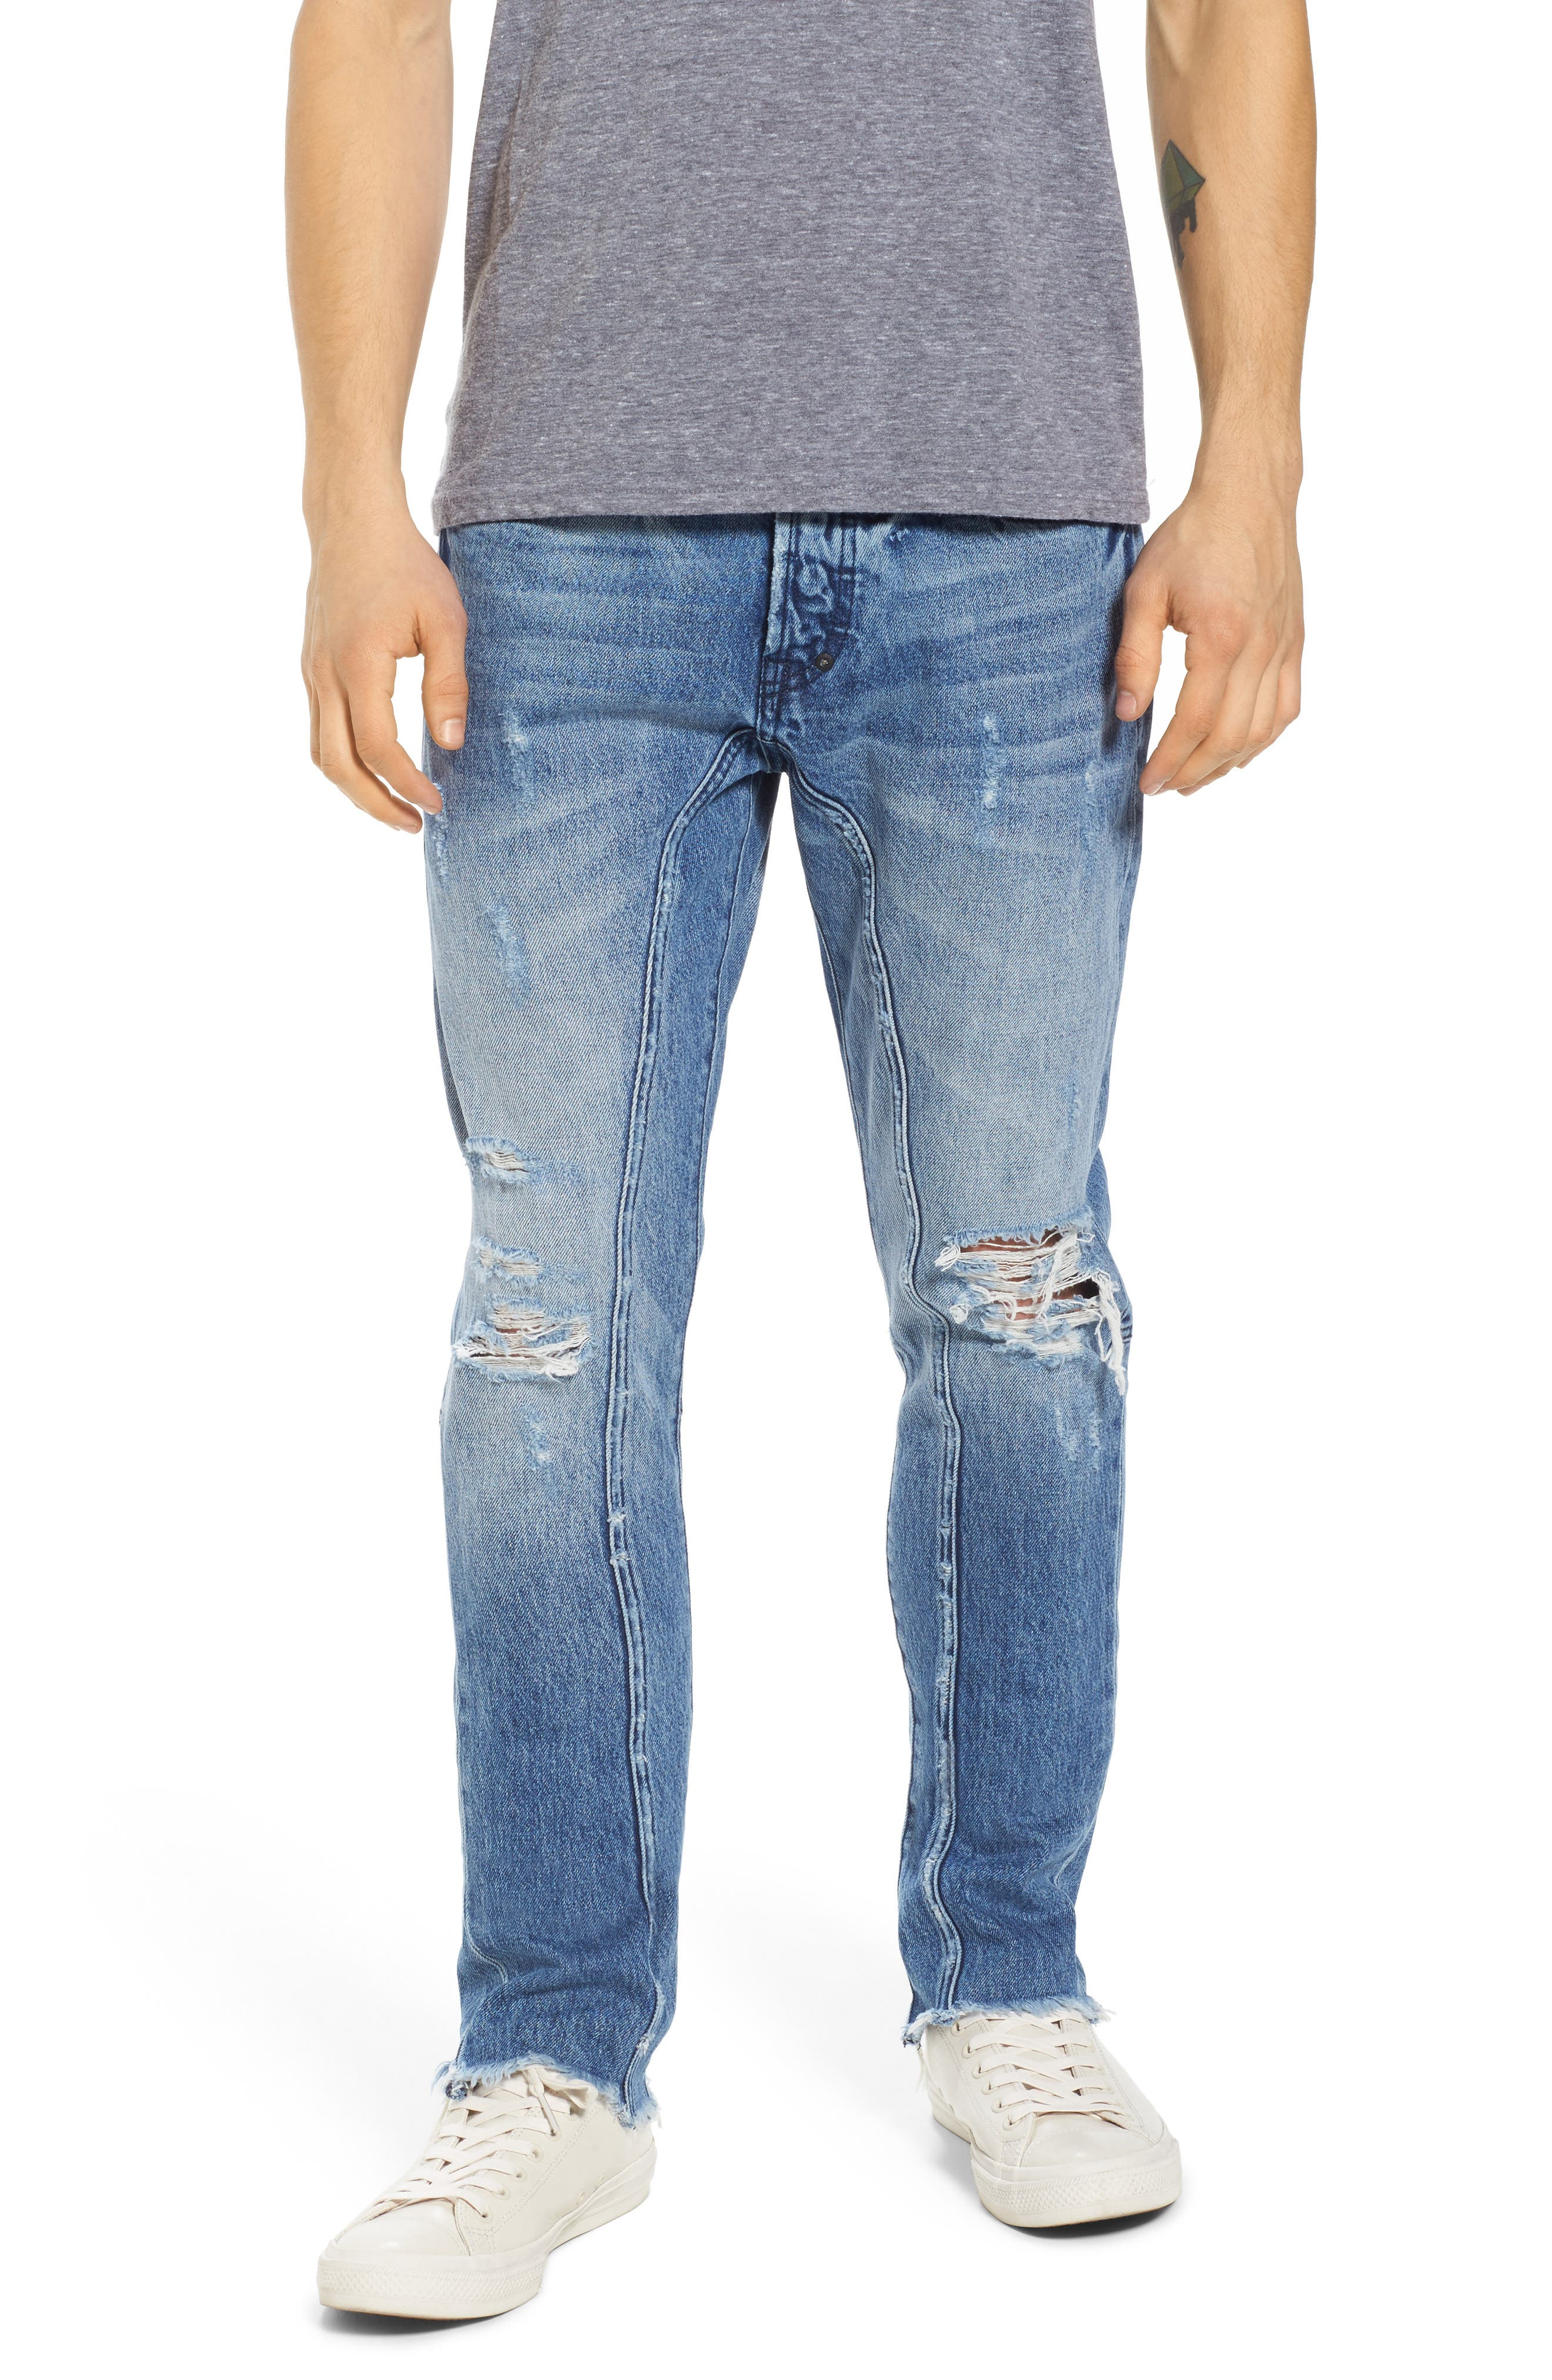 Alternate Image 1 Selected - PRPS Le Sabre Tapered Fit Jeans (Ischium)